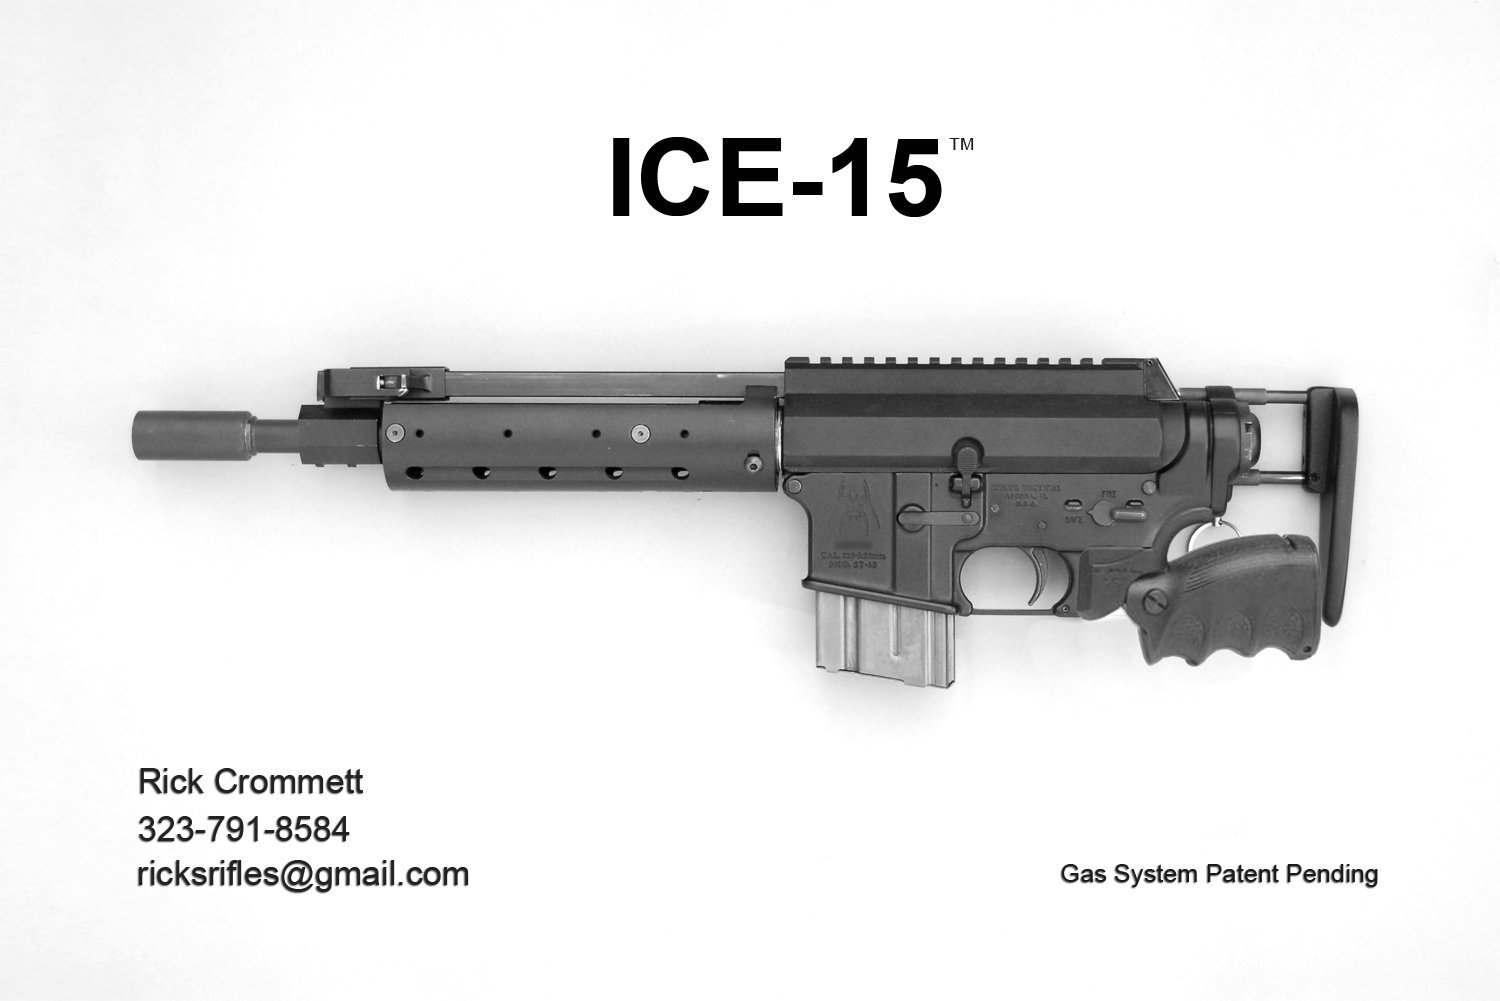 ICE 15 Impingement Carbine Enhanced Tactical AR Carbine SBR Left Side Rick Crommett Young Manufacturing <!  :en  >ICE 15 (Impingement Carbine Enhanced) Modified/Optimized Direct Gas Impingment (DGI) Tactical AR 15 Carbine/SBR with Forward Mounted Ambi Charger (Ambidextrous Charging Handle) and Folding Stock: Best of All AR Worlds? <!  :  >